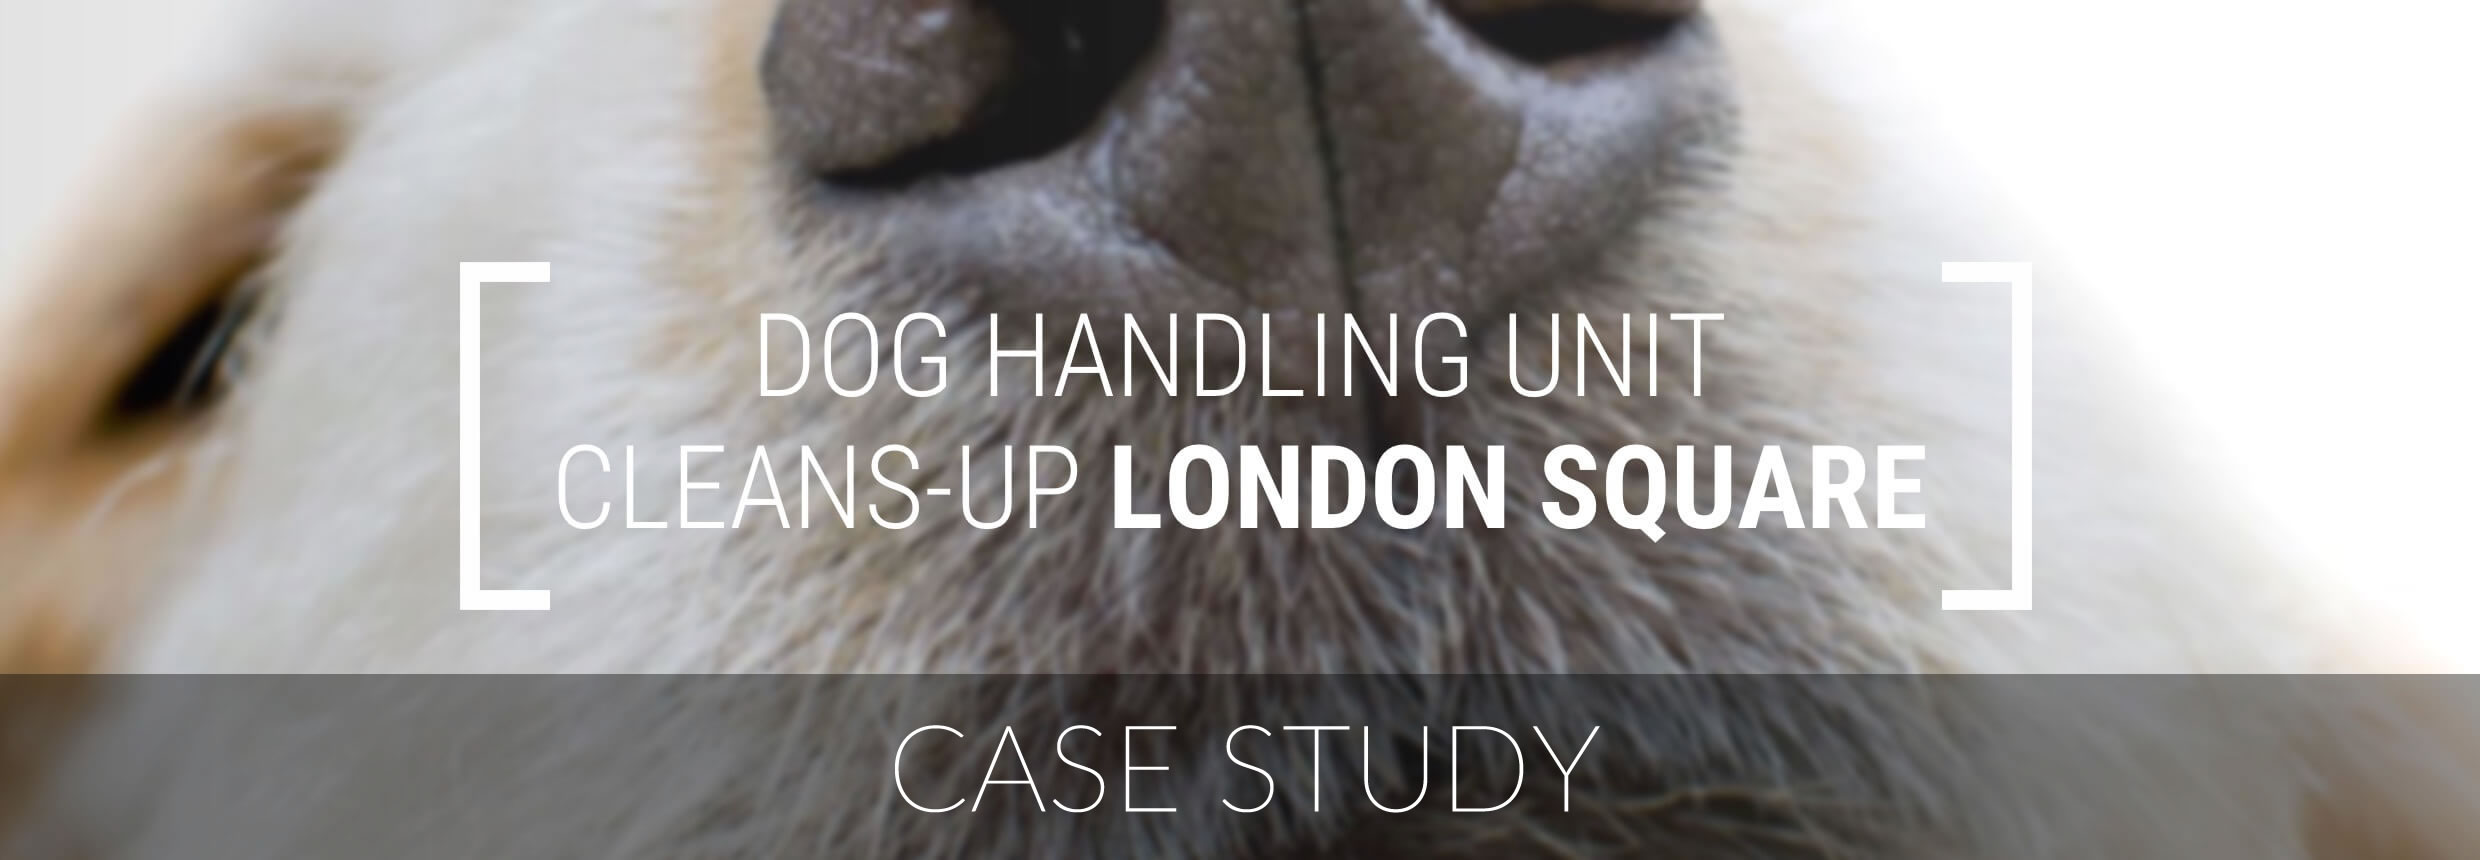 Clearway Case Study - Security Guard Dog Unit